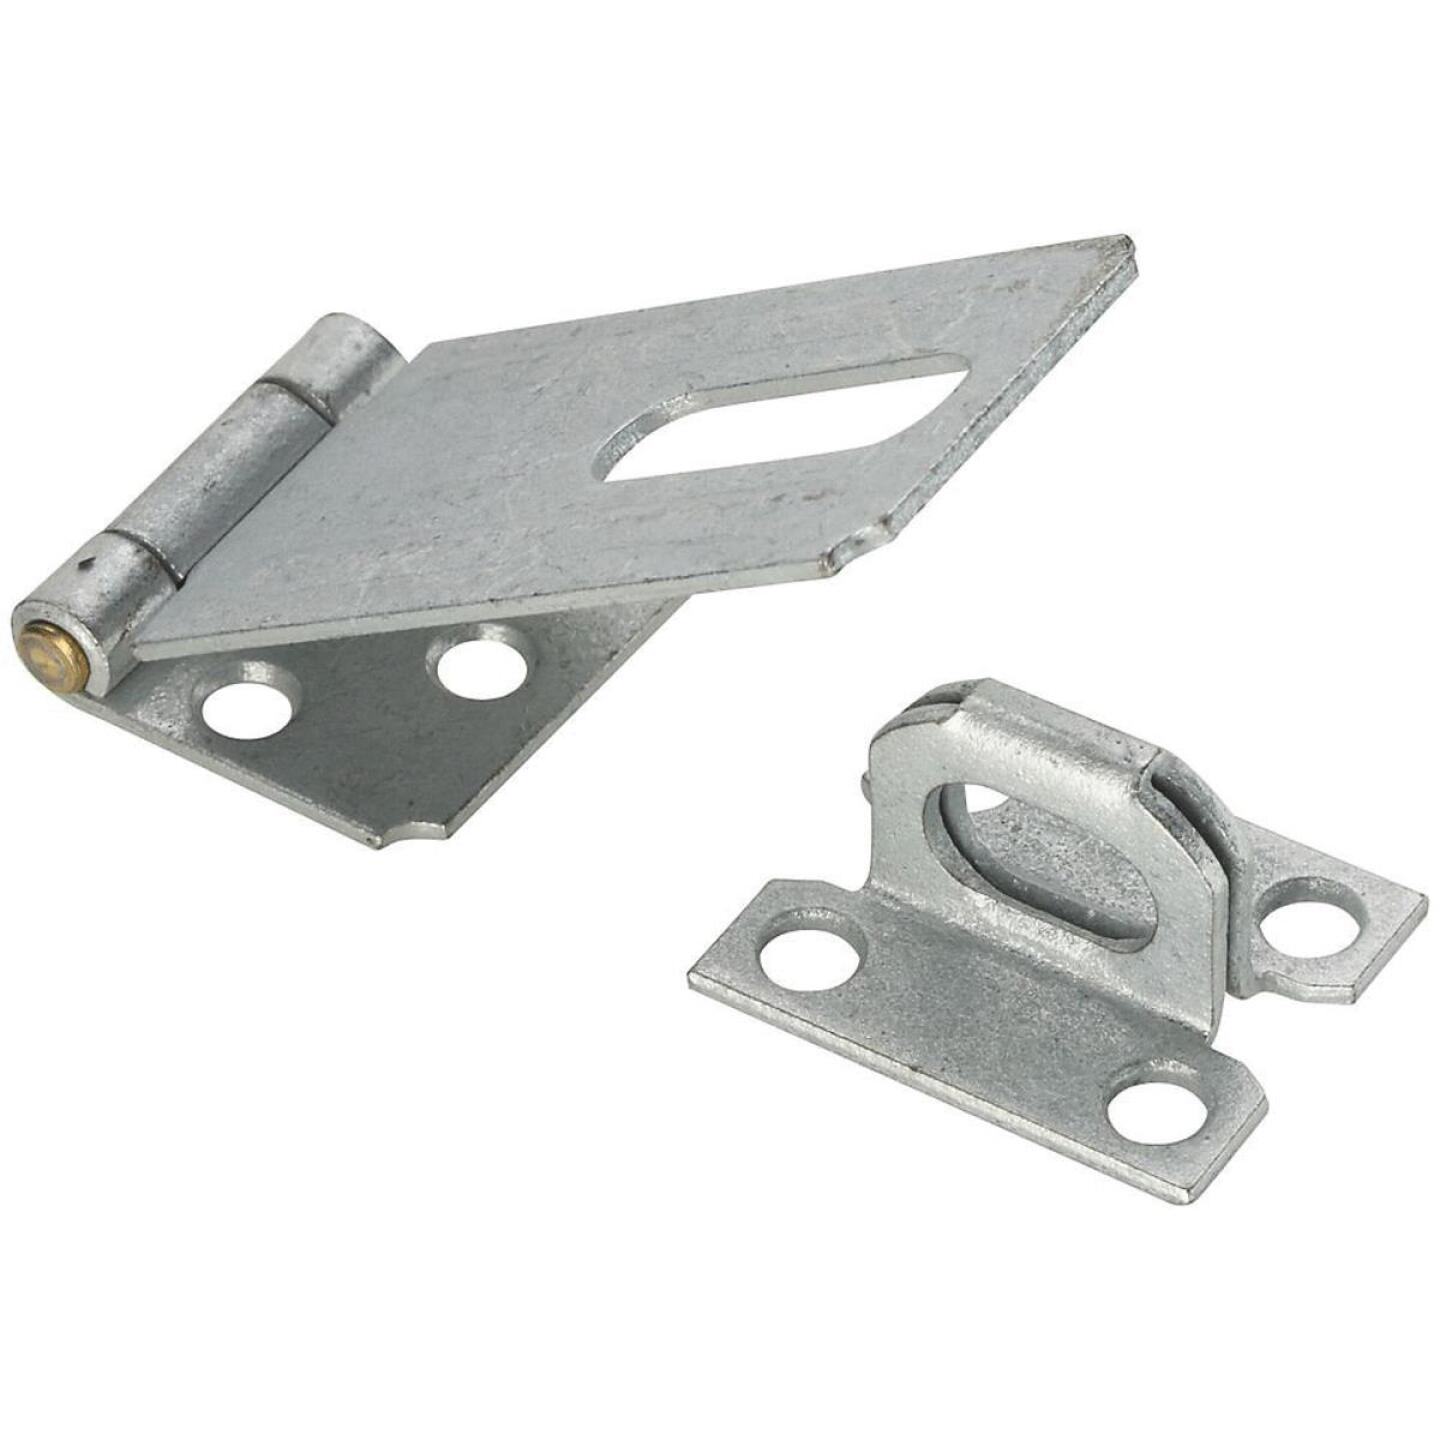 National 3-1/4 In. Galvanized Non-Swivel Safety Hasp Image 1